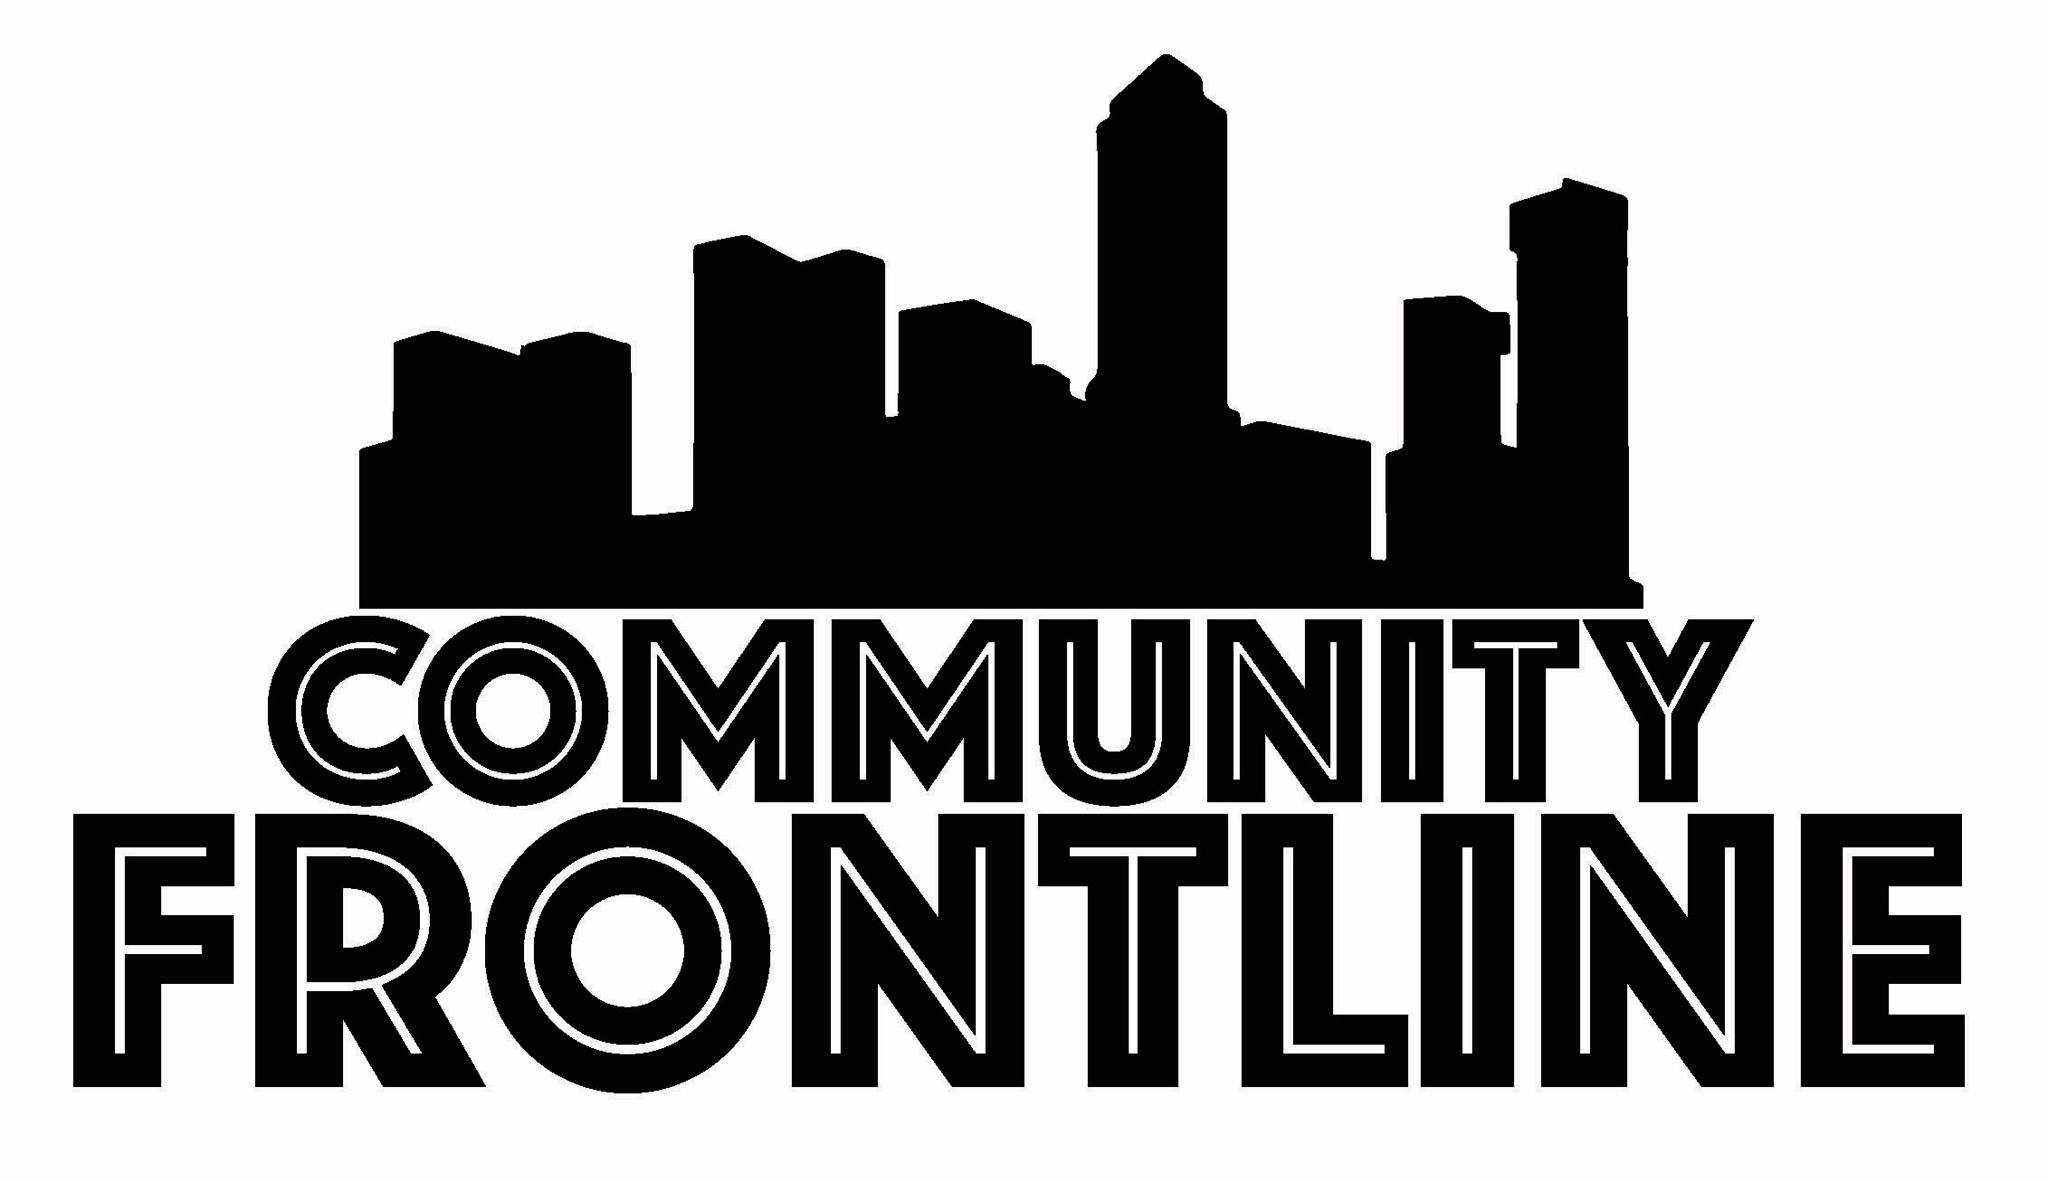 CommUnity Frontline | Building Men To Serve The Community | Fort Worth TX